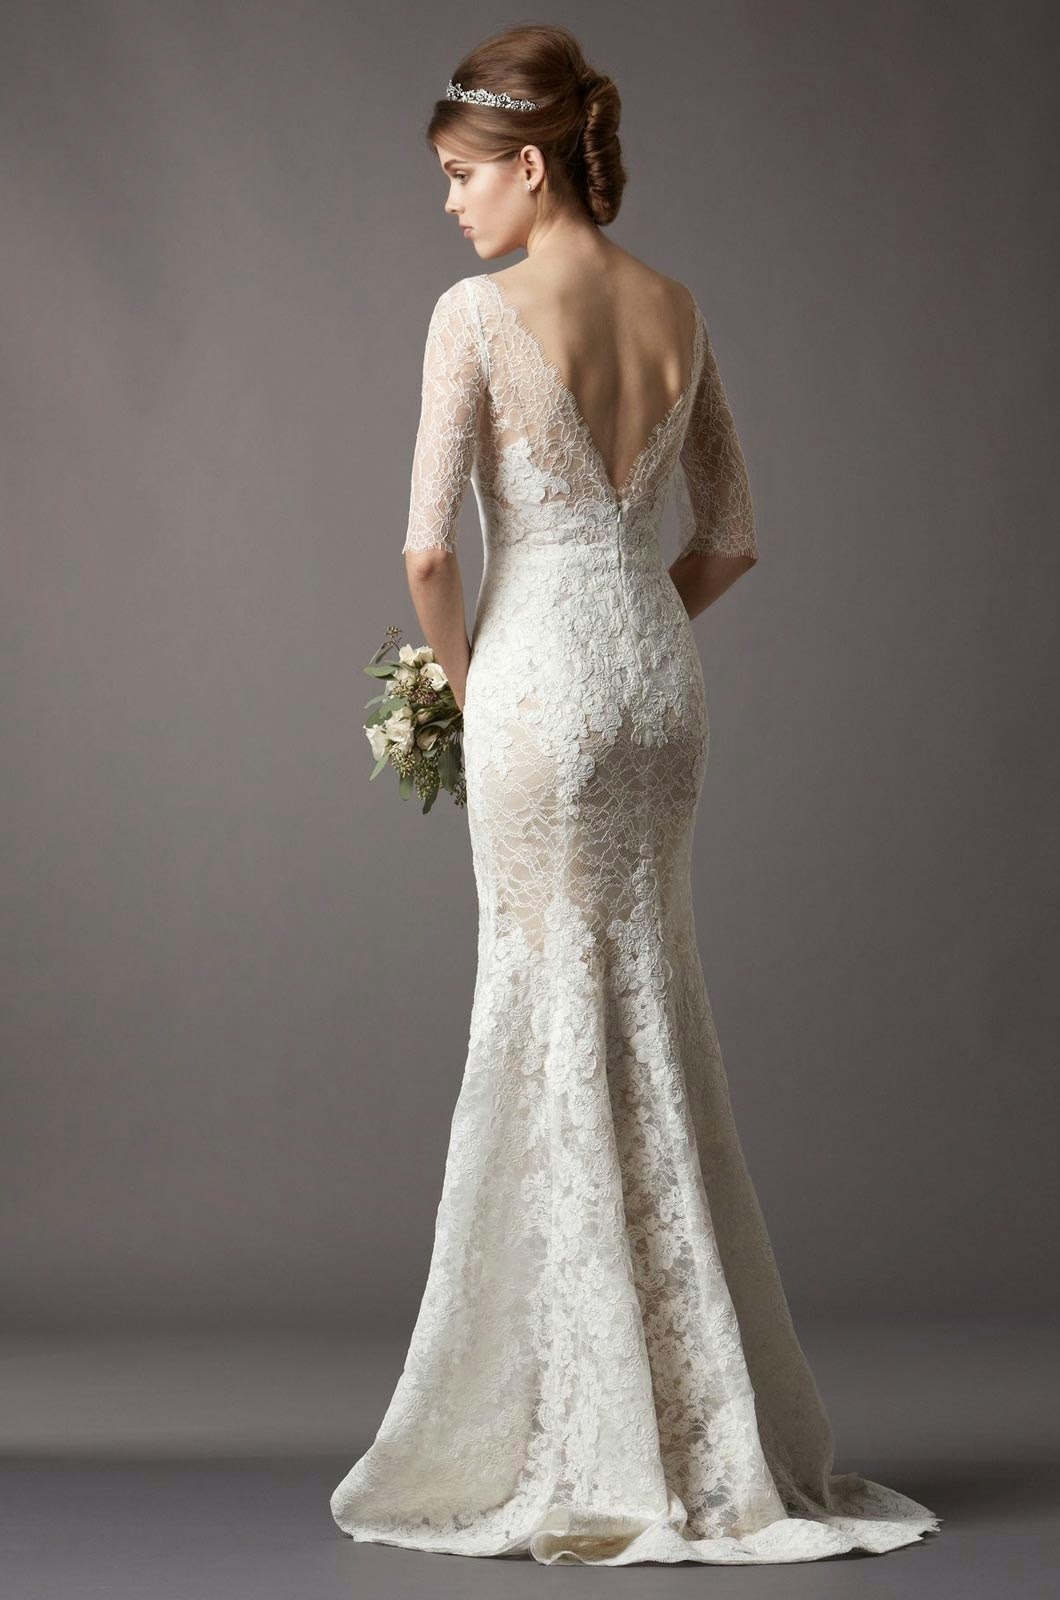 Stylish modern lace wedding dresses with long sleeves ideas for Chic modern wedding dresses